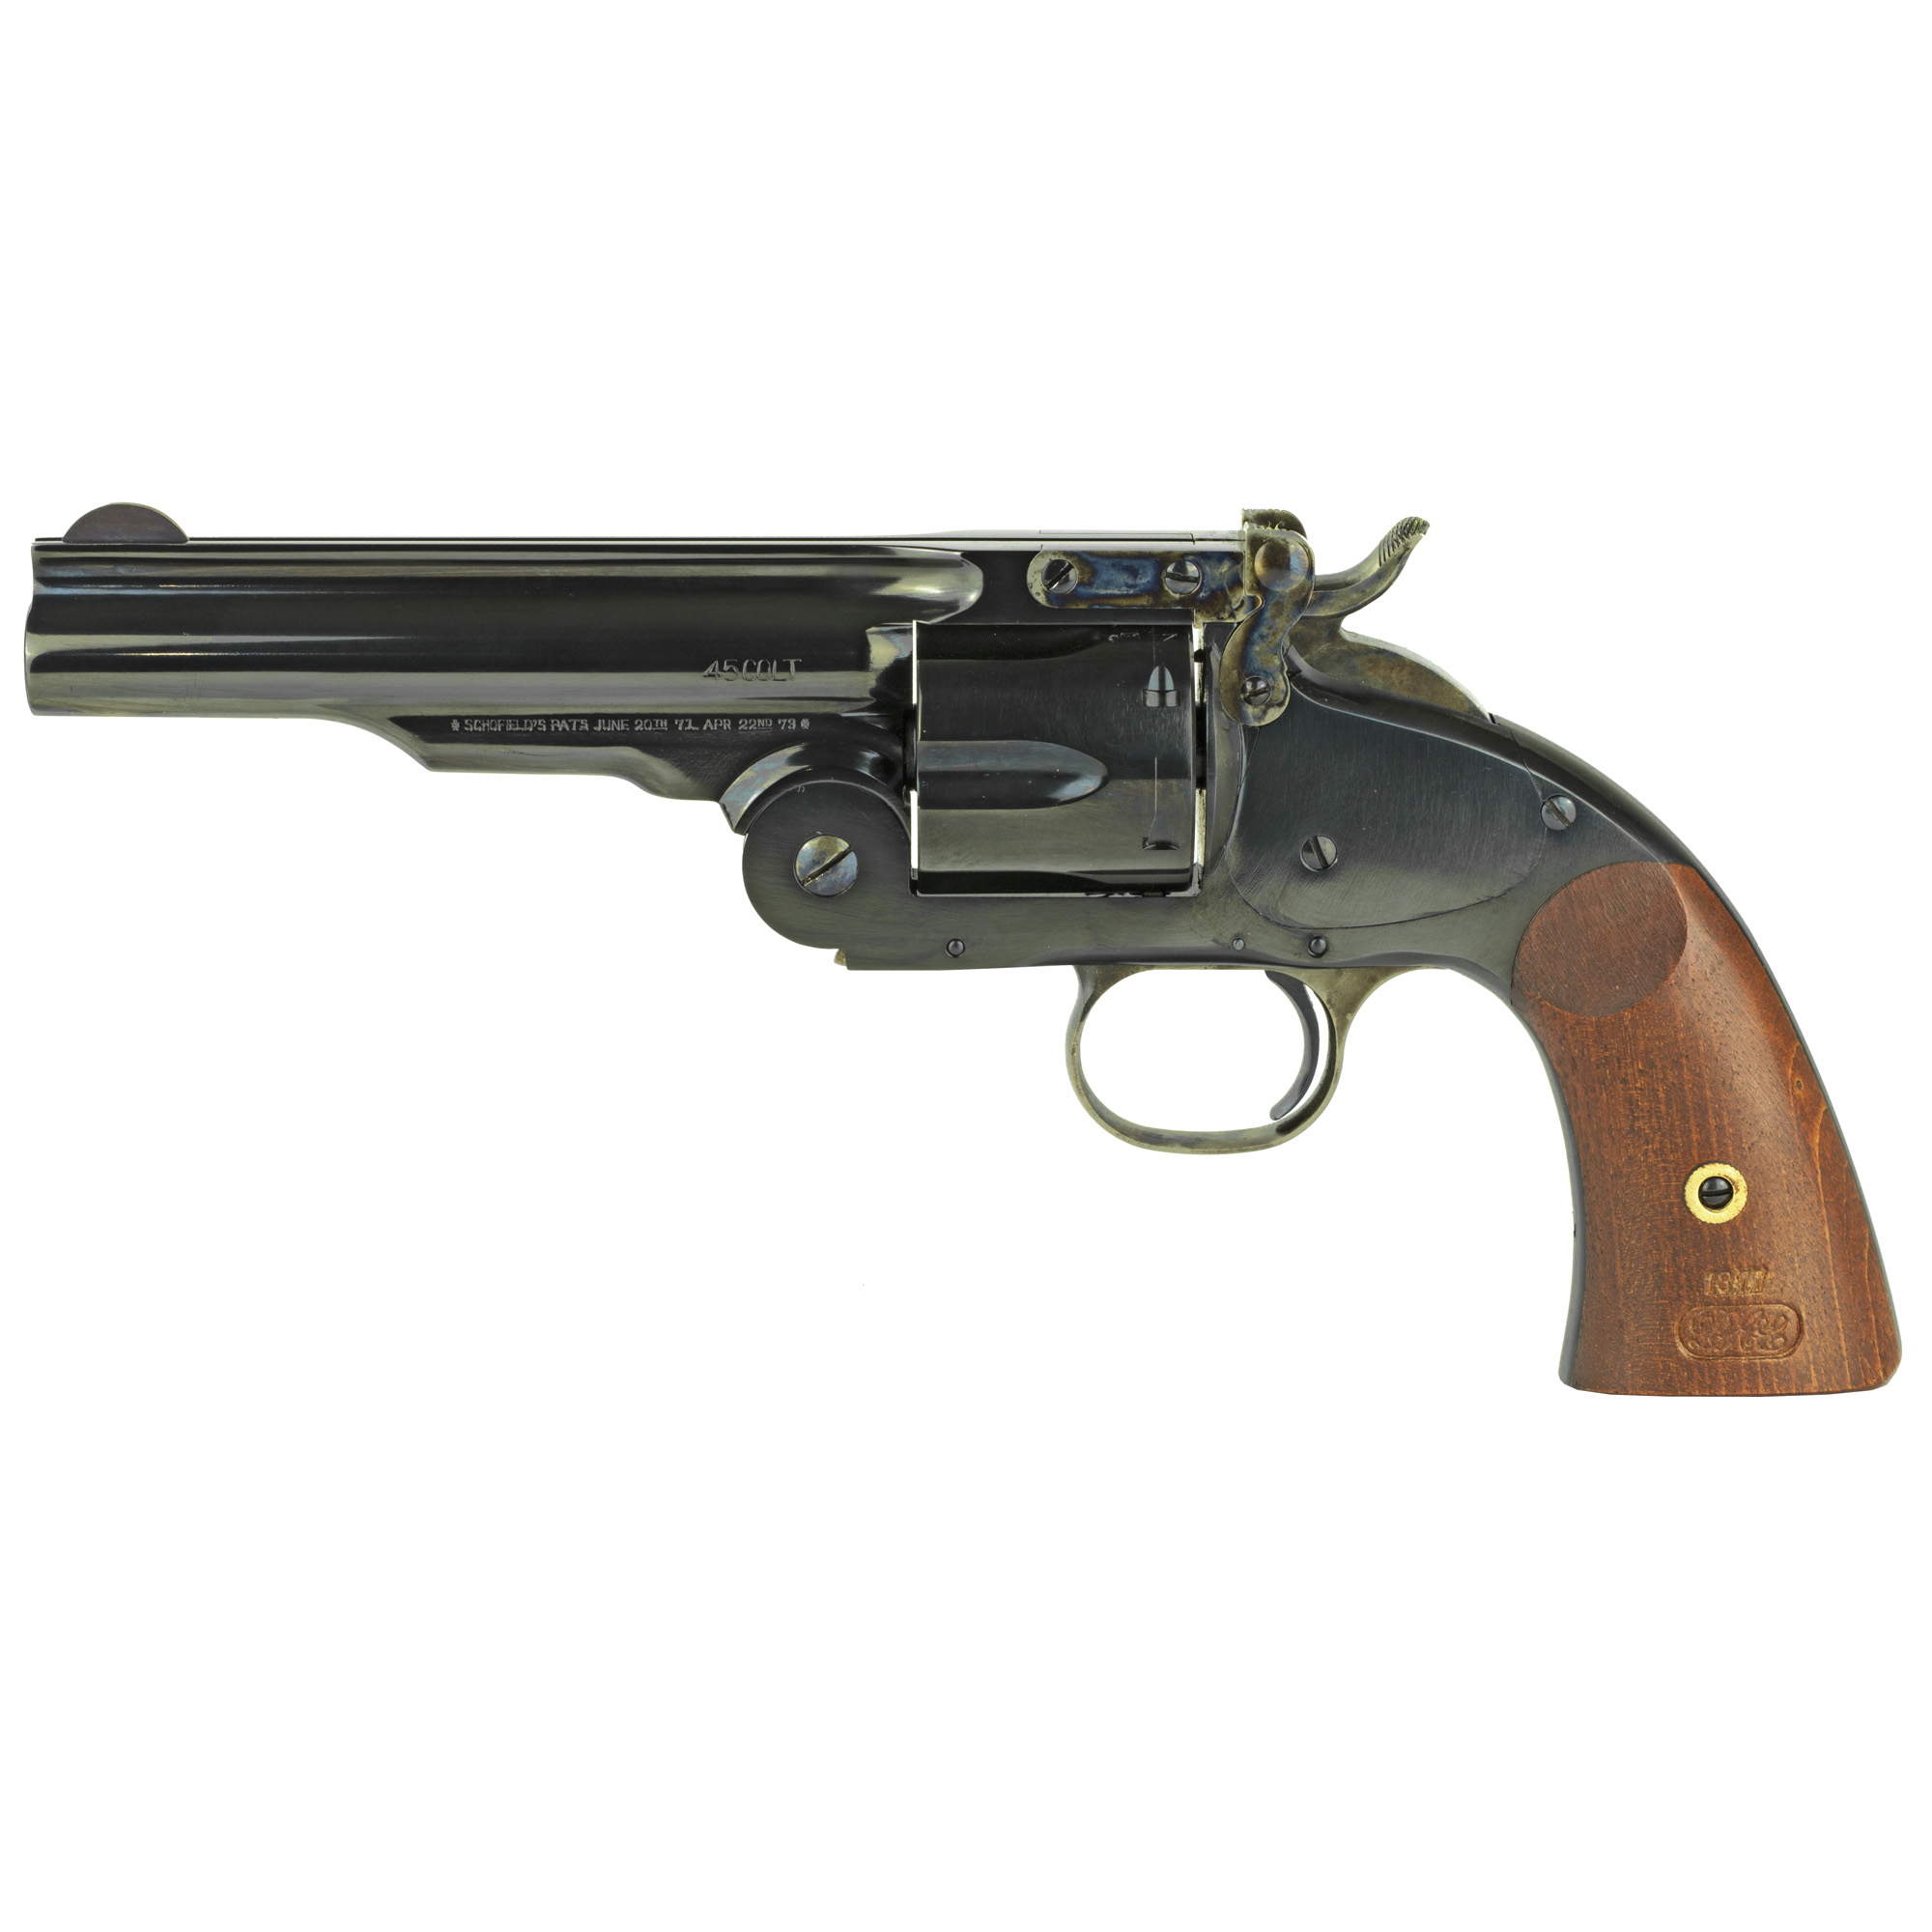 "Cimarron offers the Model No. 3 Schofield"" 2nd Model"" copied directly from an original in their vast collection of antique firearms. (.45 Colt chambered Cimarron Schofields also handle the .45 Schofield cartridge)."